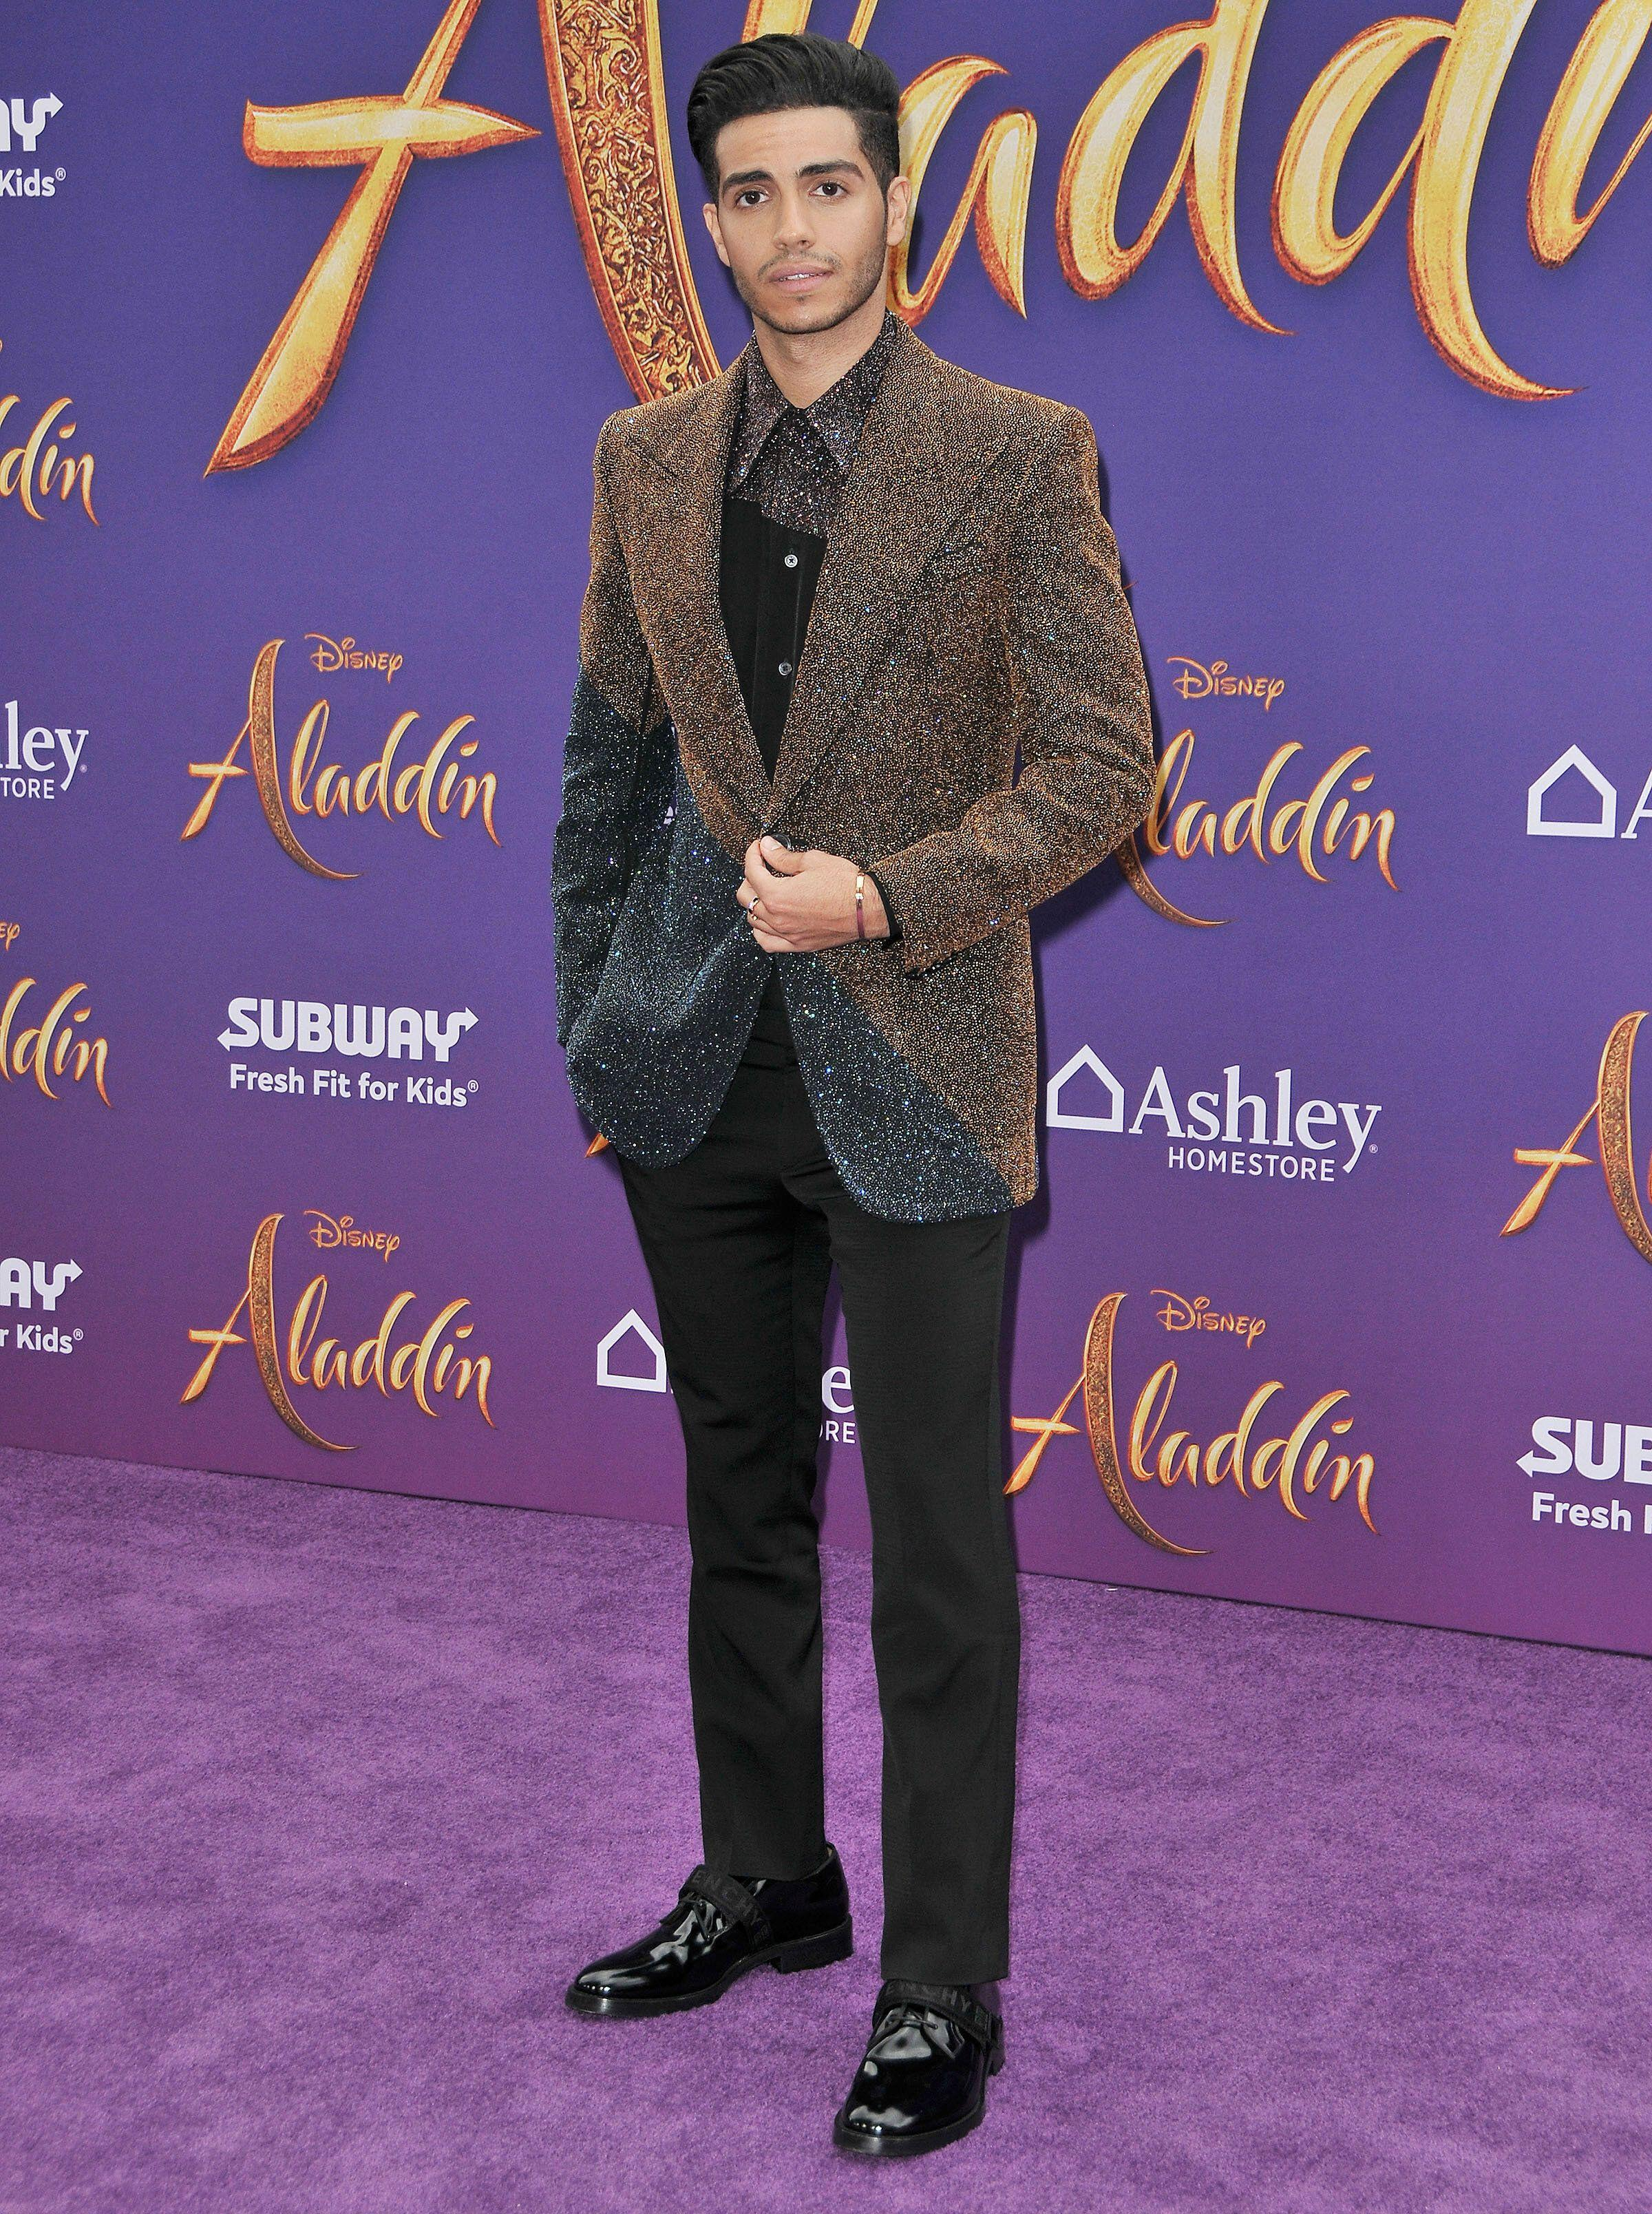 Mena Massoud at the 'Aladdin' premiere at El Capitan Theatre in Hollywood. [Photo: PA]